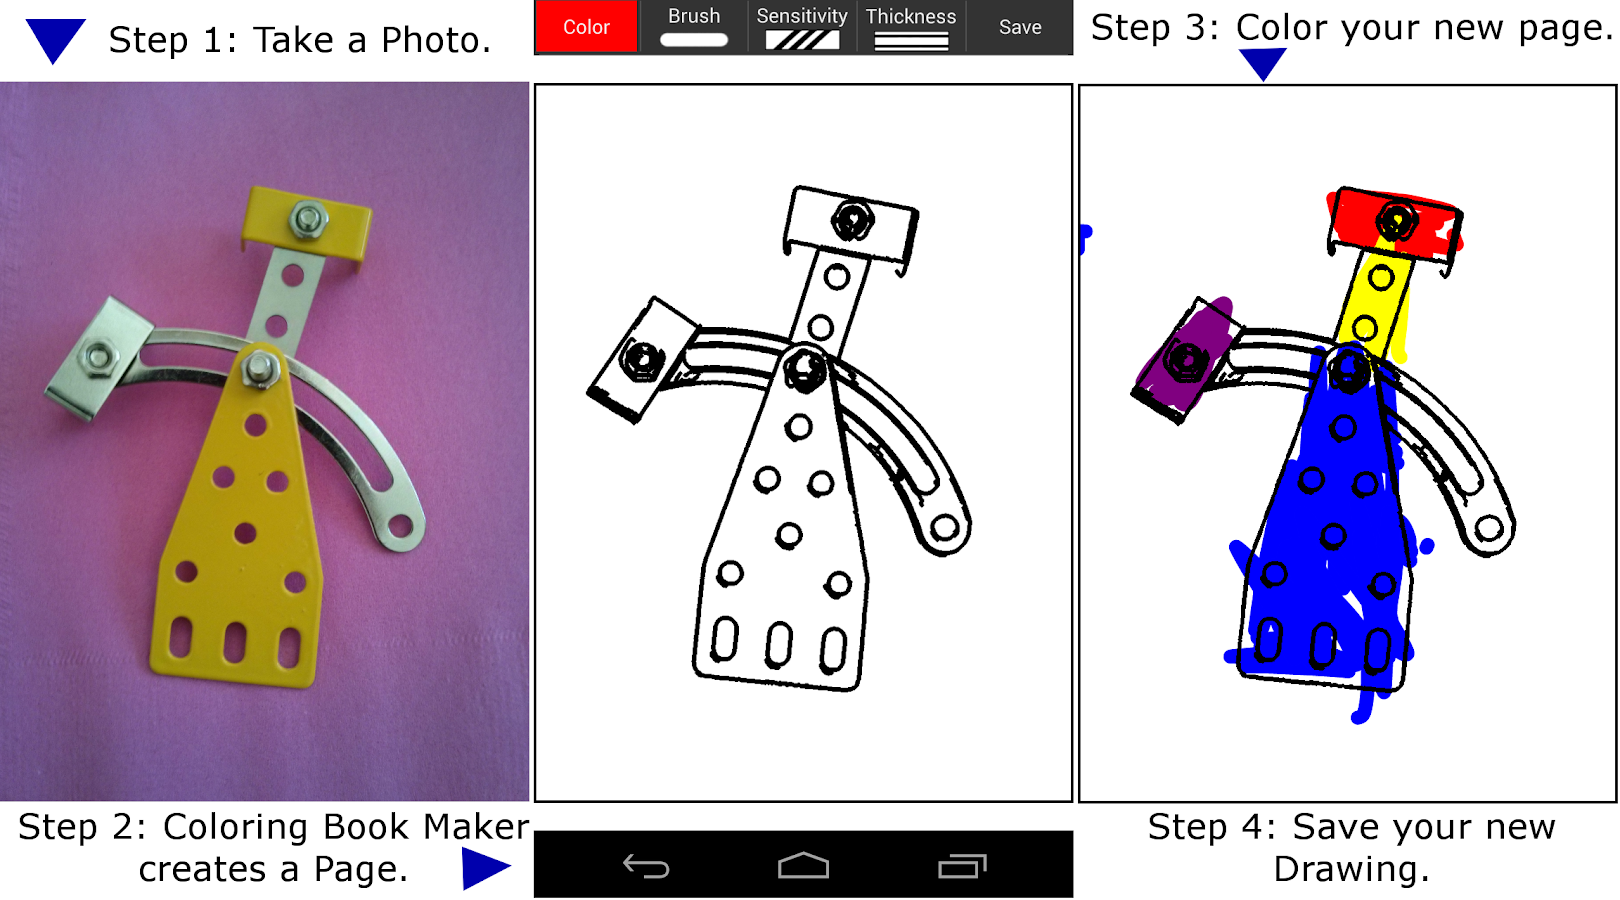 Coloring Book Maker - Android Apps on Google Play